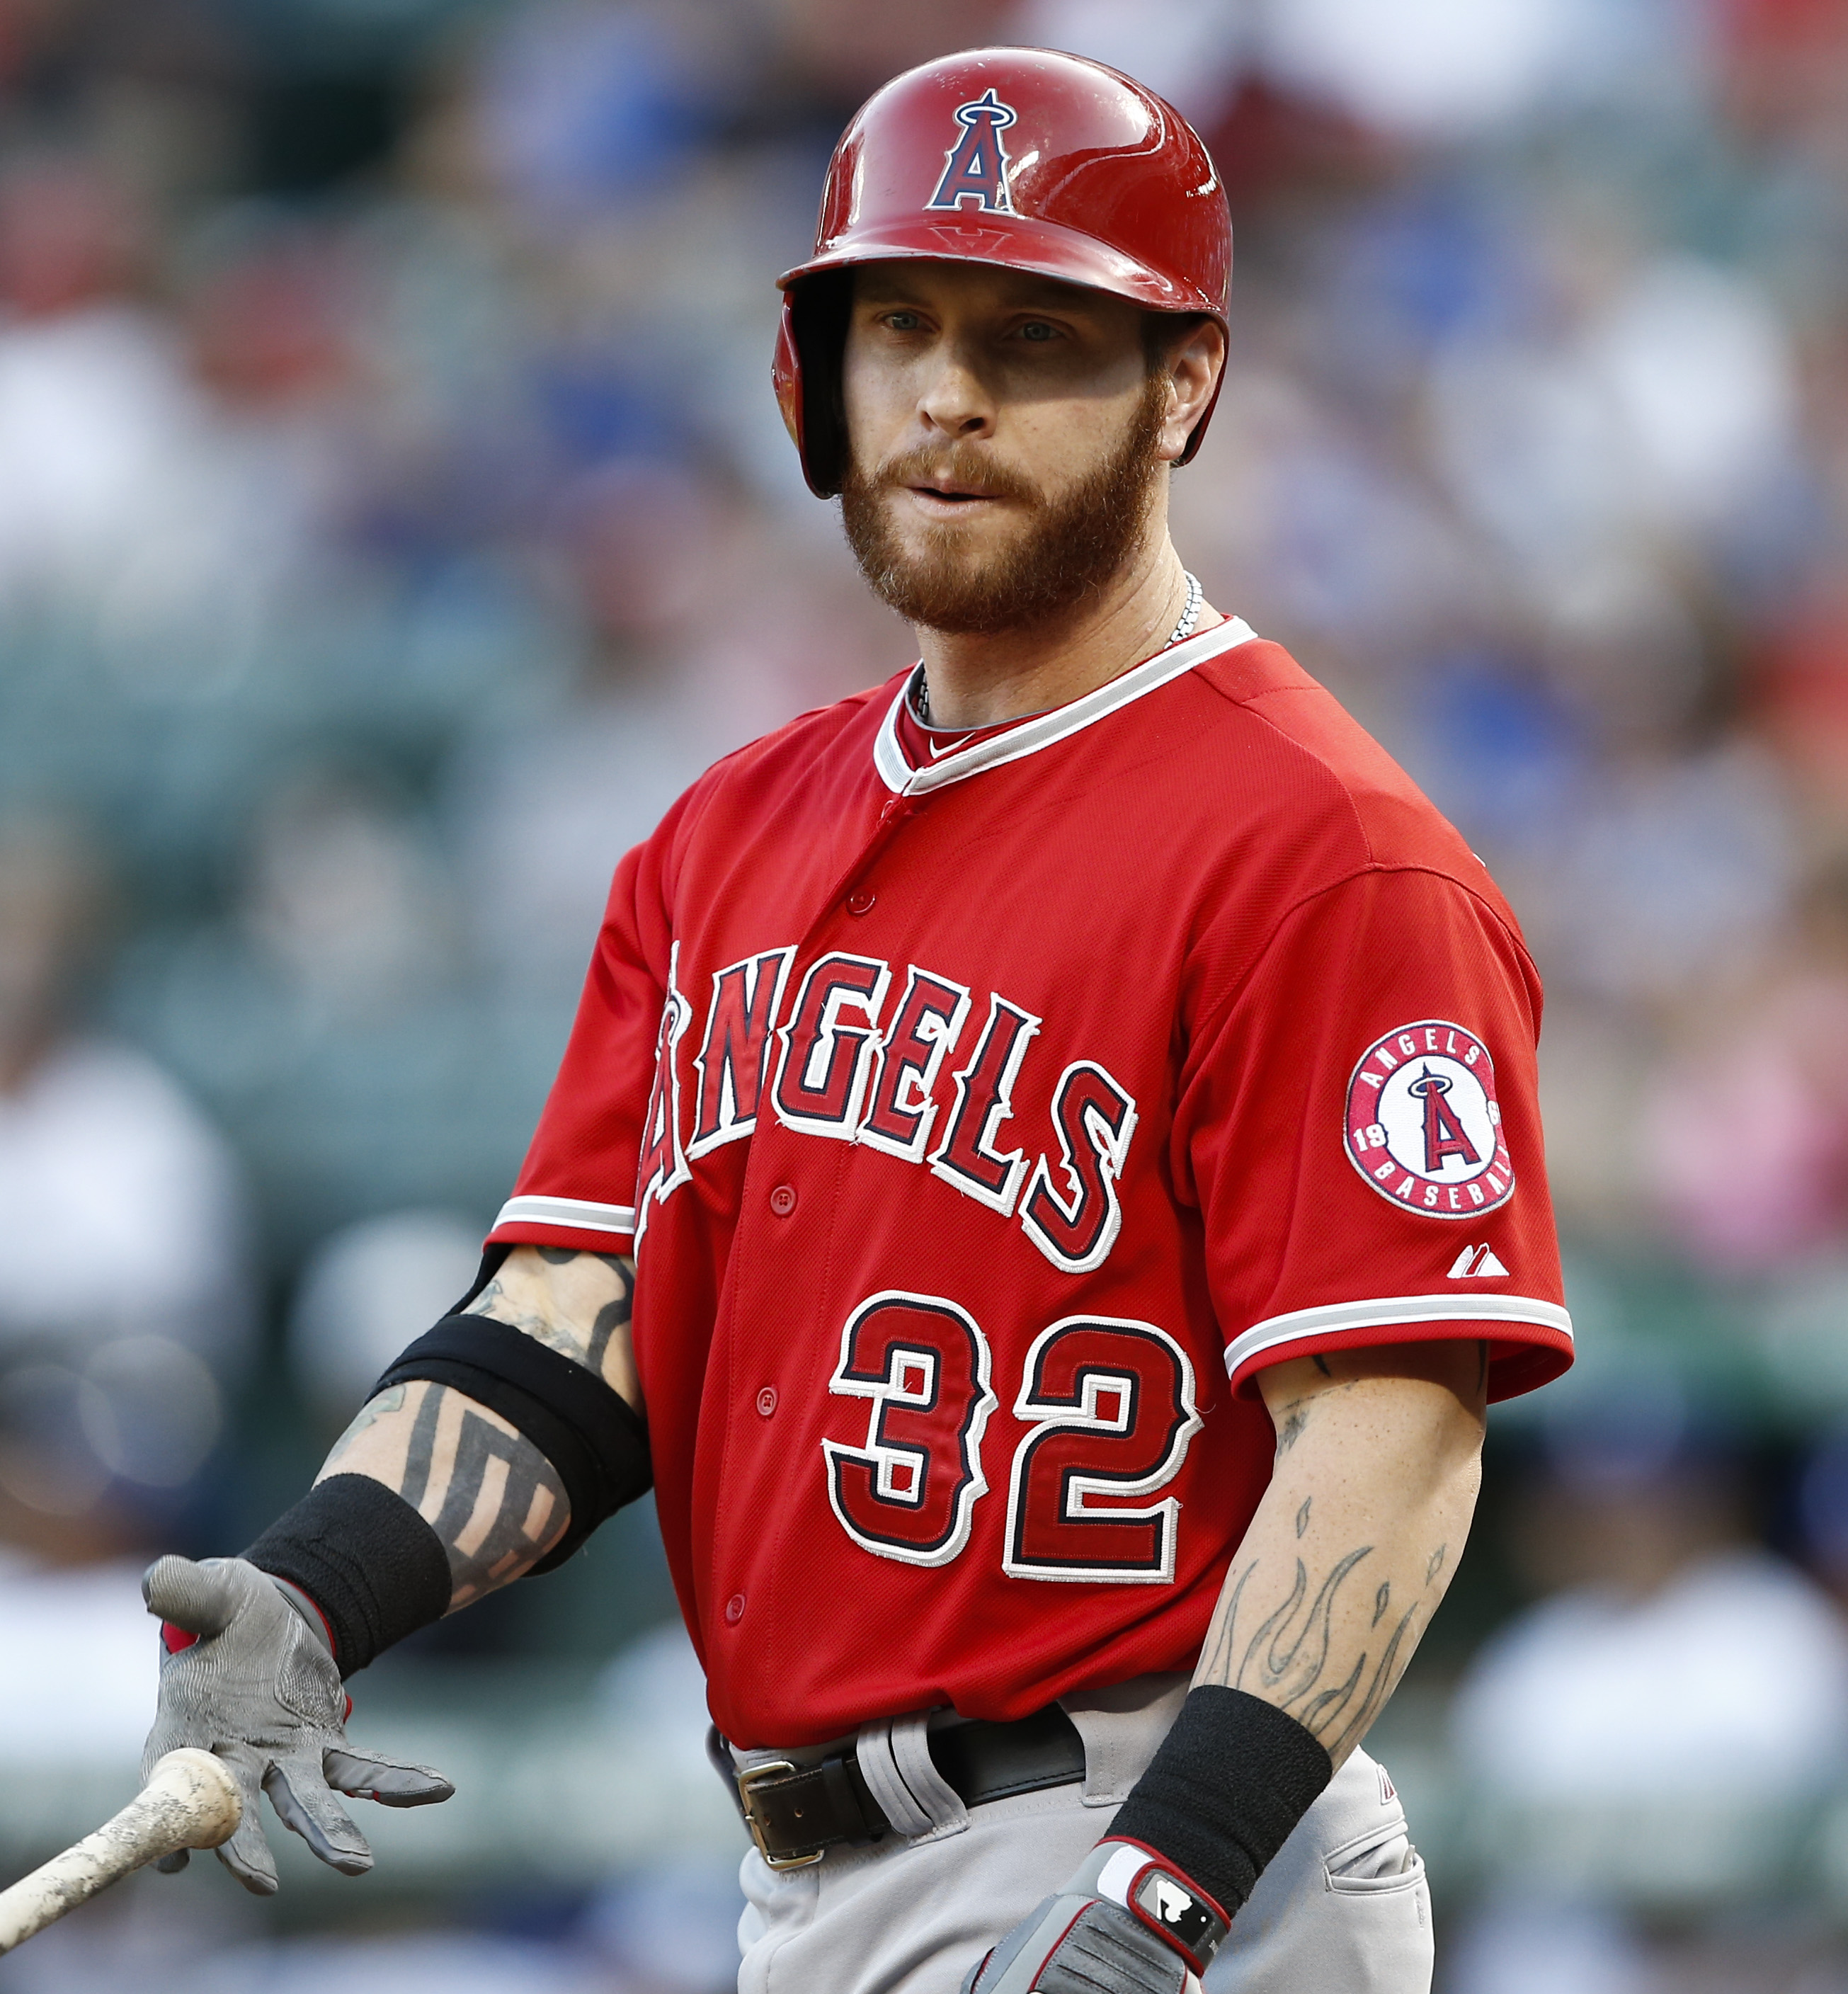 josh hamilton Josh hamilton, professional baseball player, is described as both famous and infamous throughout the world of major league sports during his career, hamilton found himself struggling with substance abuse, and he ultimately credits god for saving his career and his life.